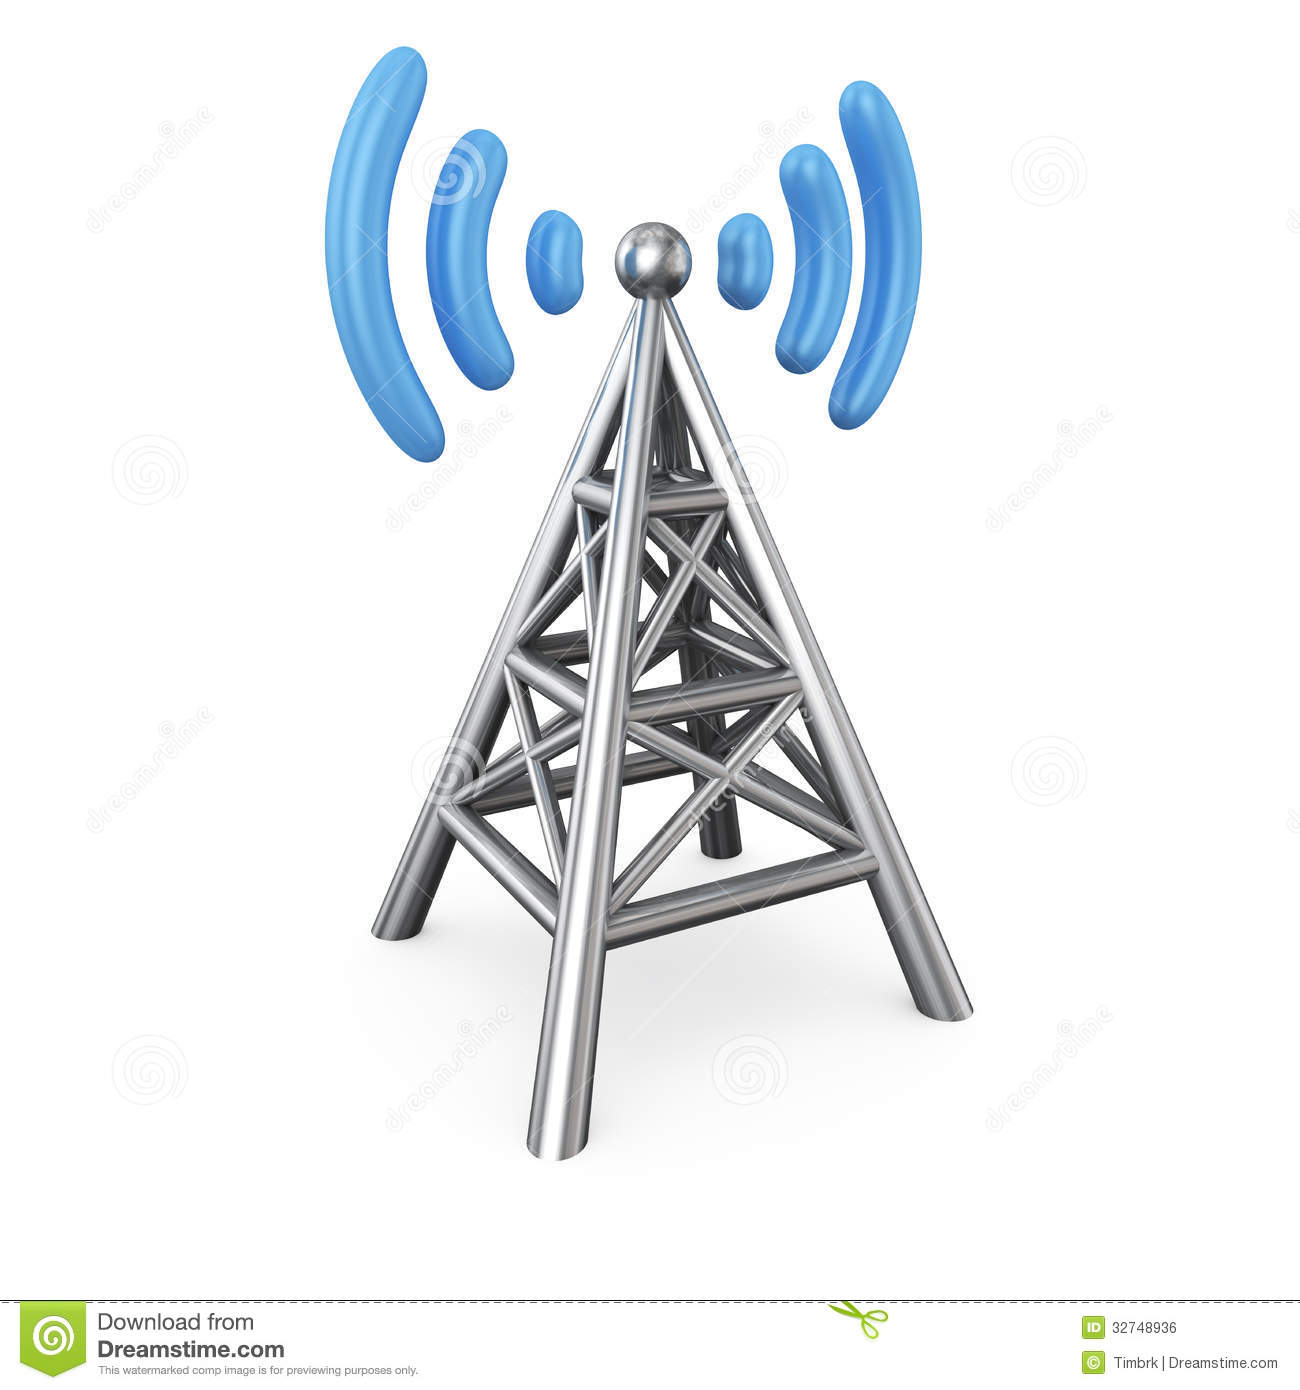 Royalty Free Stock Image Antenna Metal Symbol Isolated White Image32748936 on tower radio network